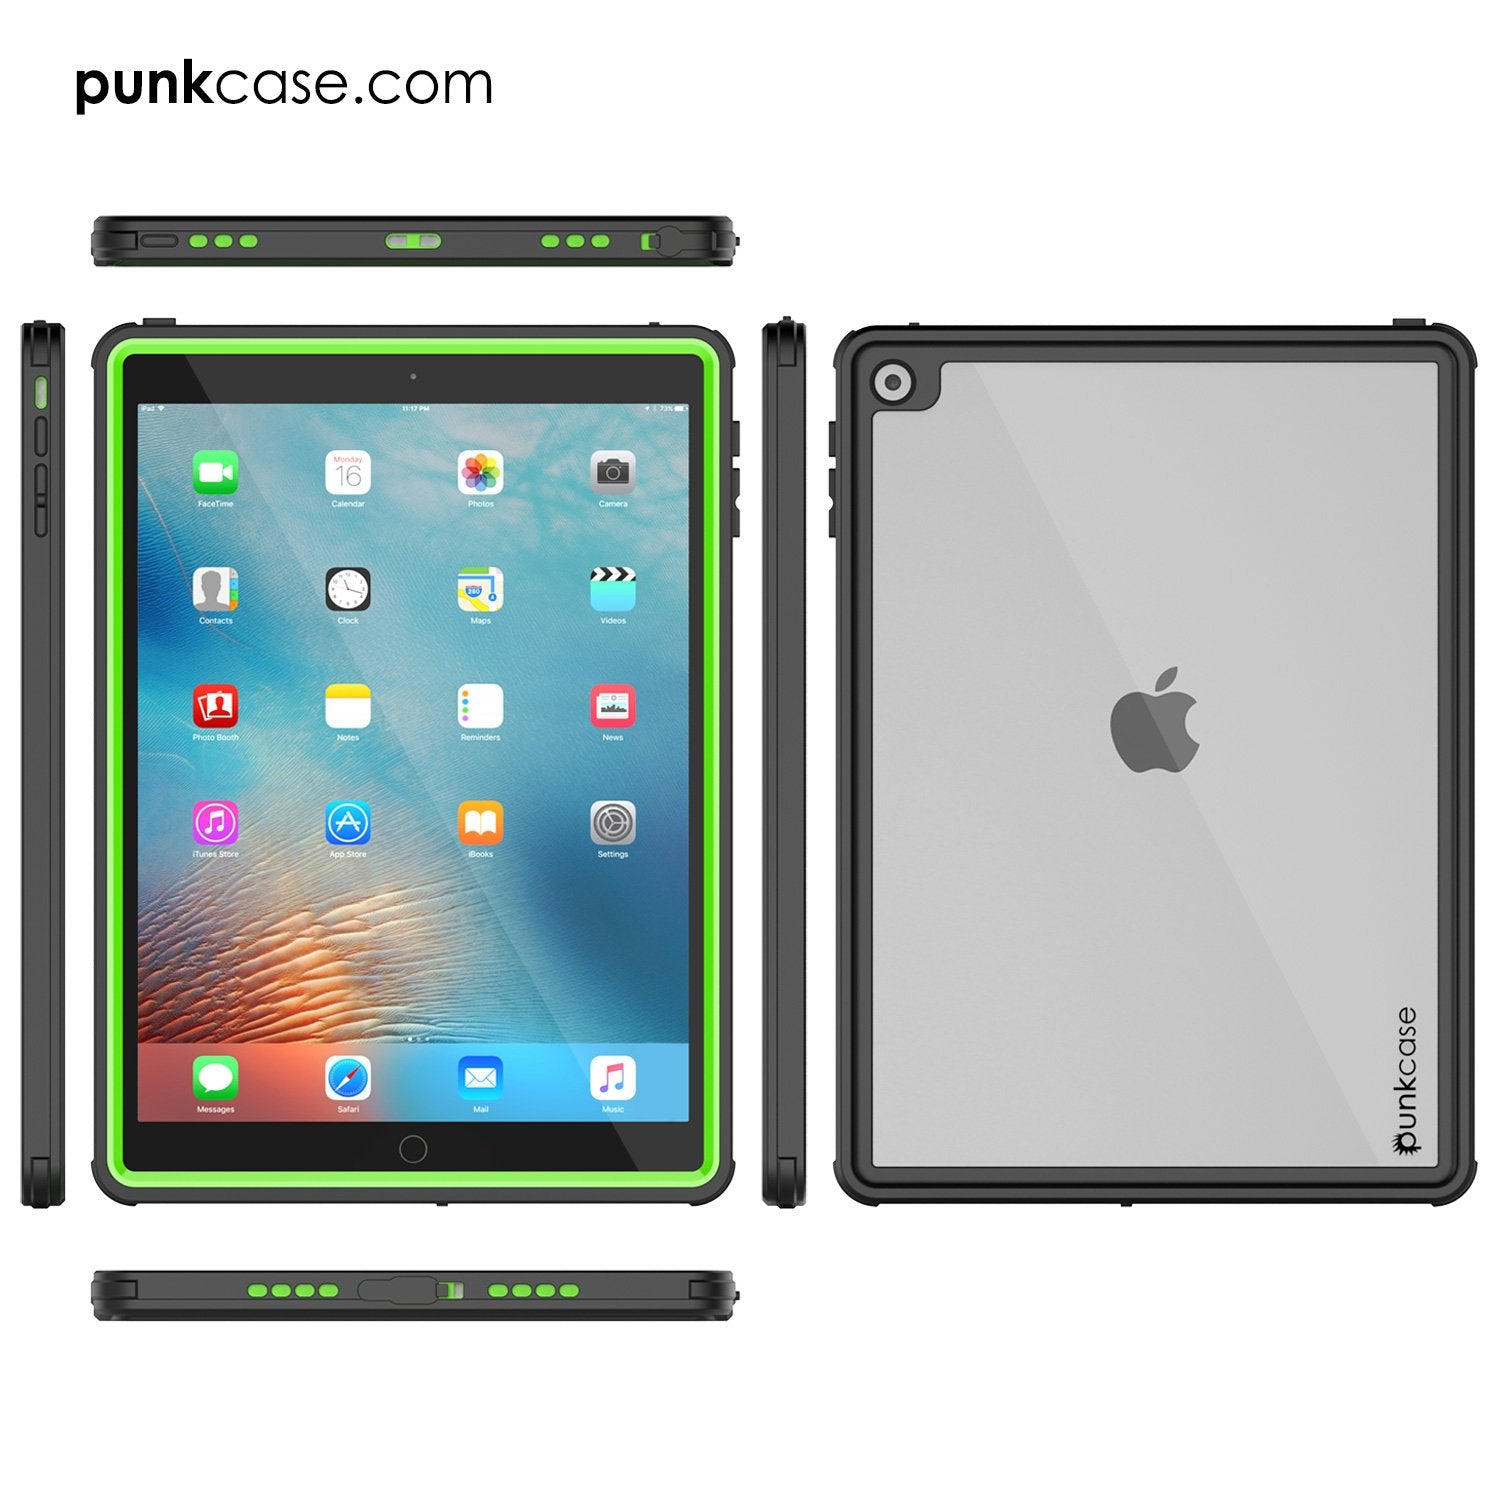 Punkcase iPad Pro 9.7 Case CRYSTAL Series Cover [Light Green]